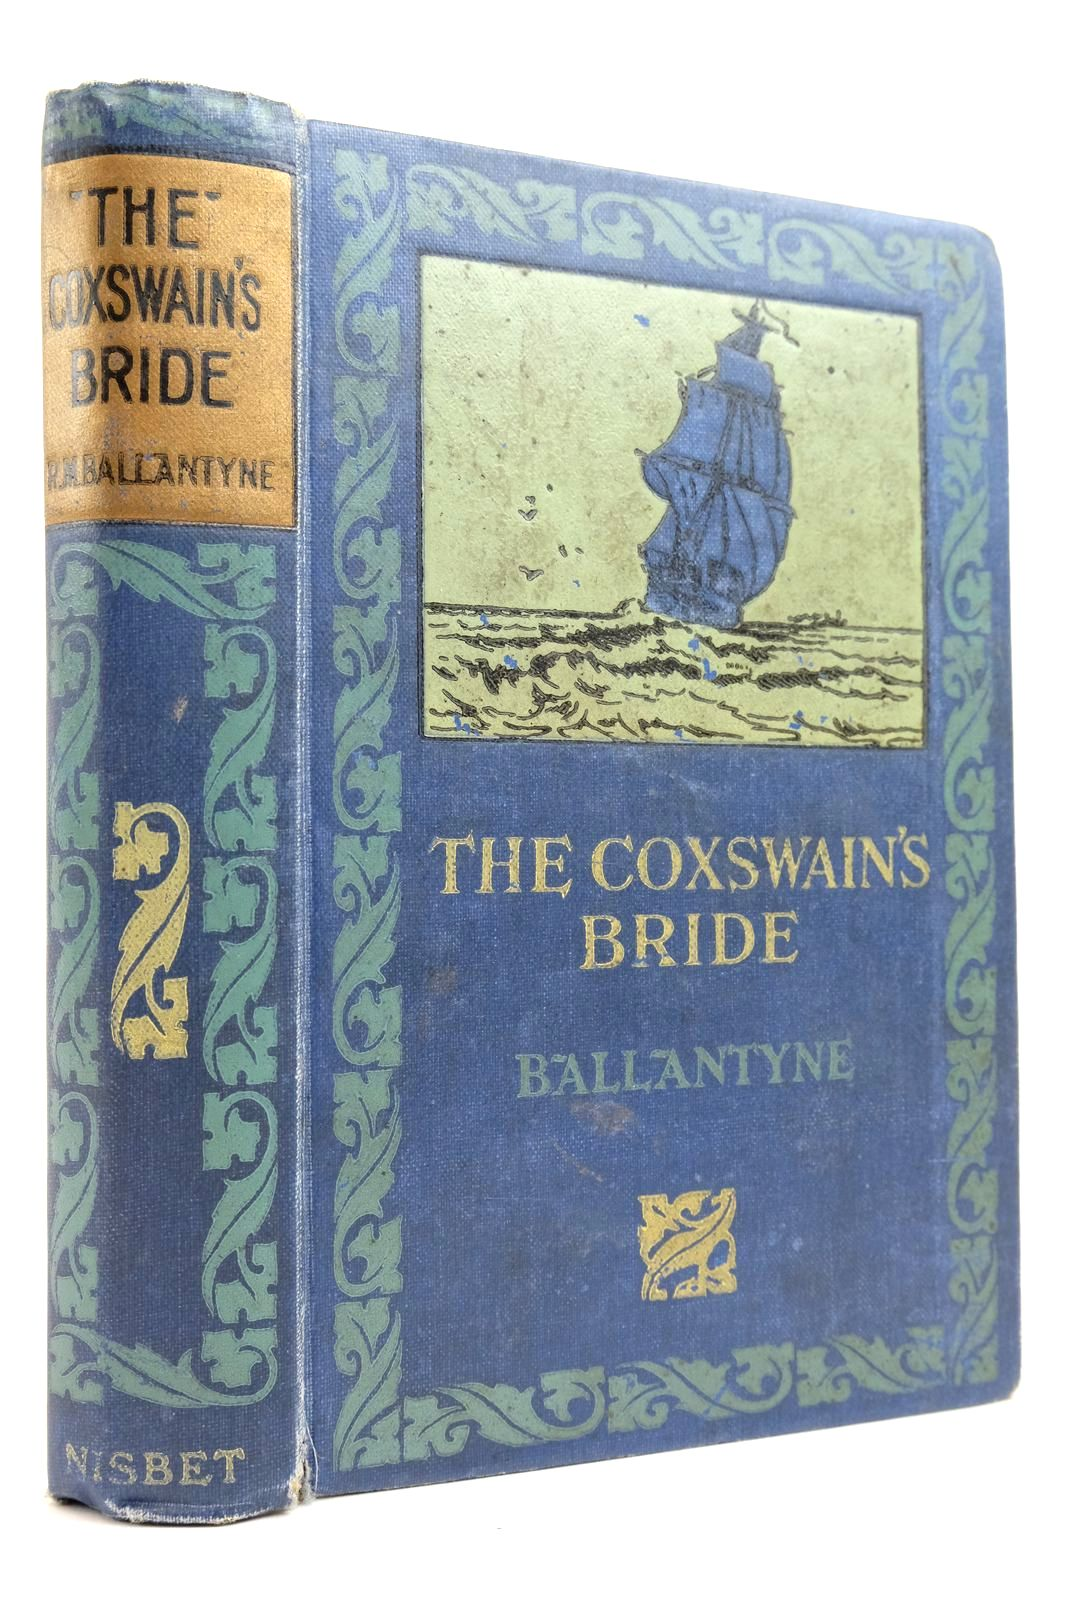 Photo of THE COXWAIN'S BRIDE OR THE RISING TIDE AND OTHER TALES- Stock Number: 2134976